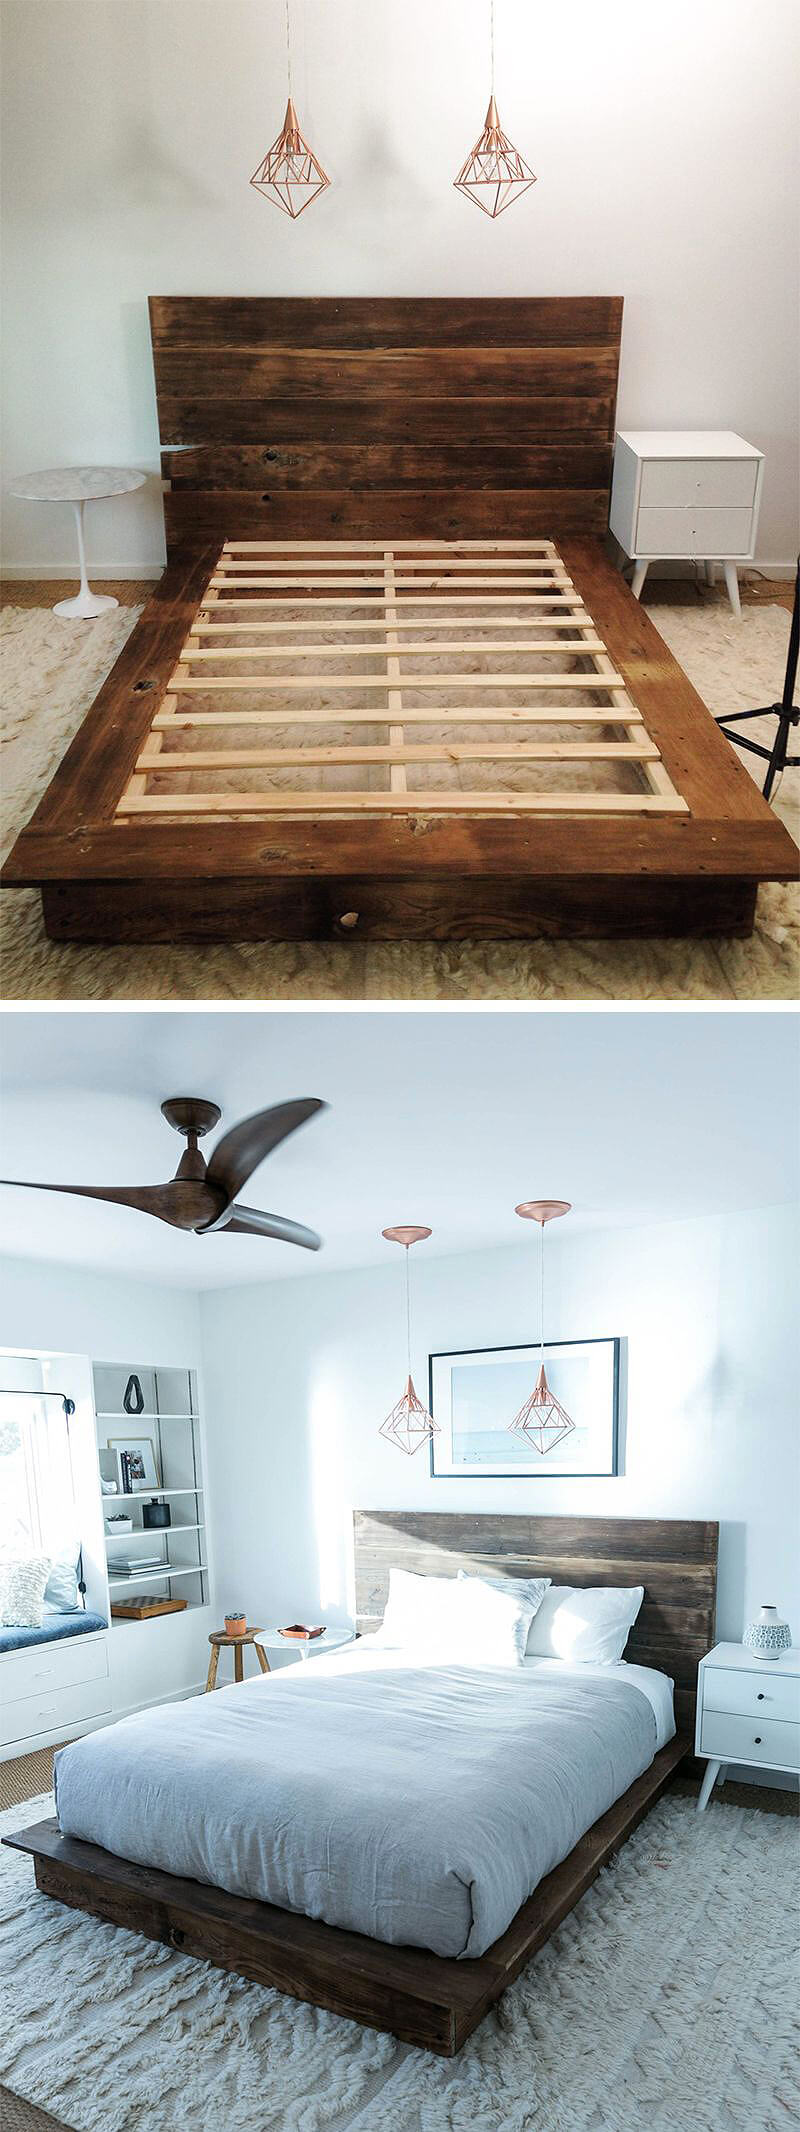 Pallet Style Mattress Frame and Earthy Wooden Headboard